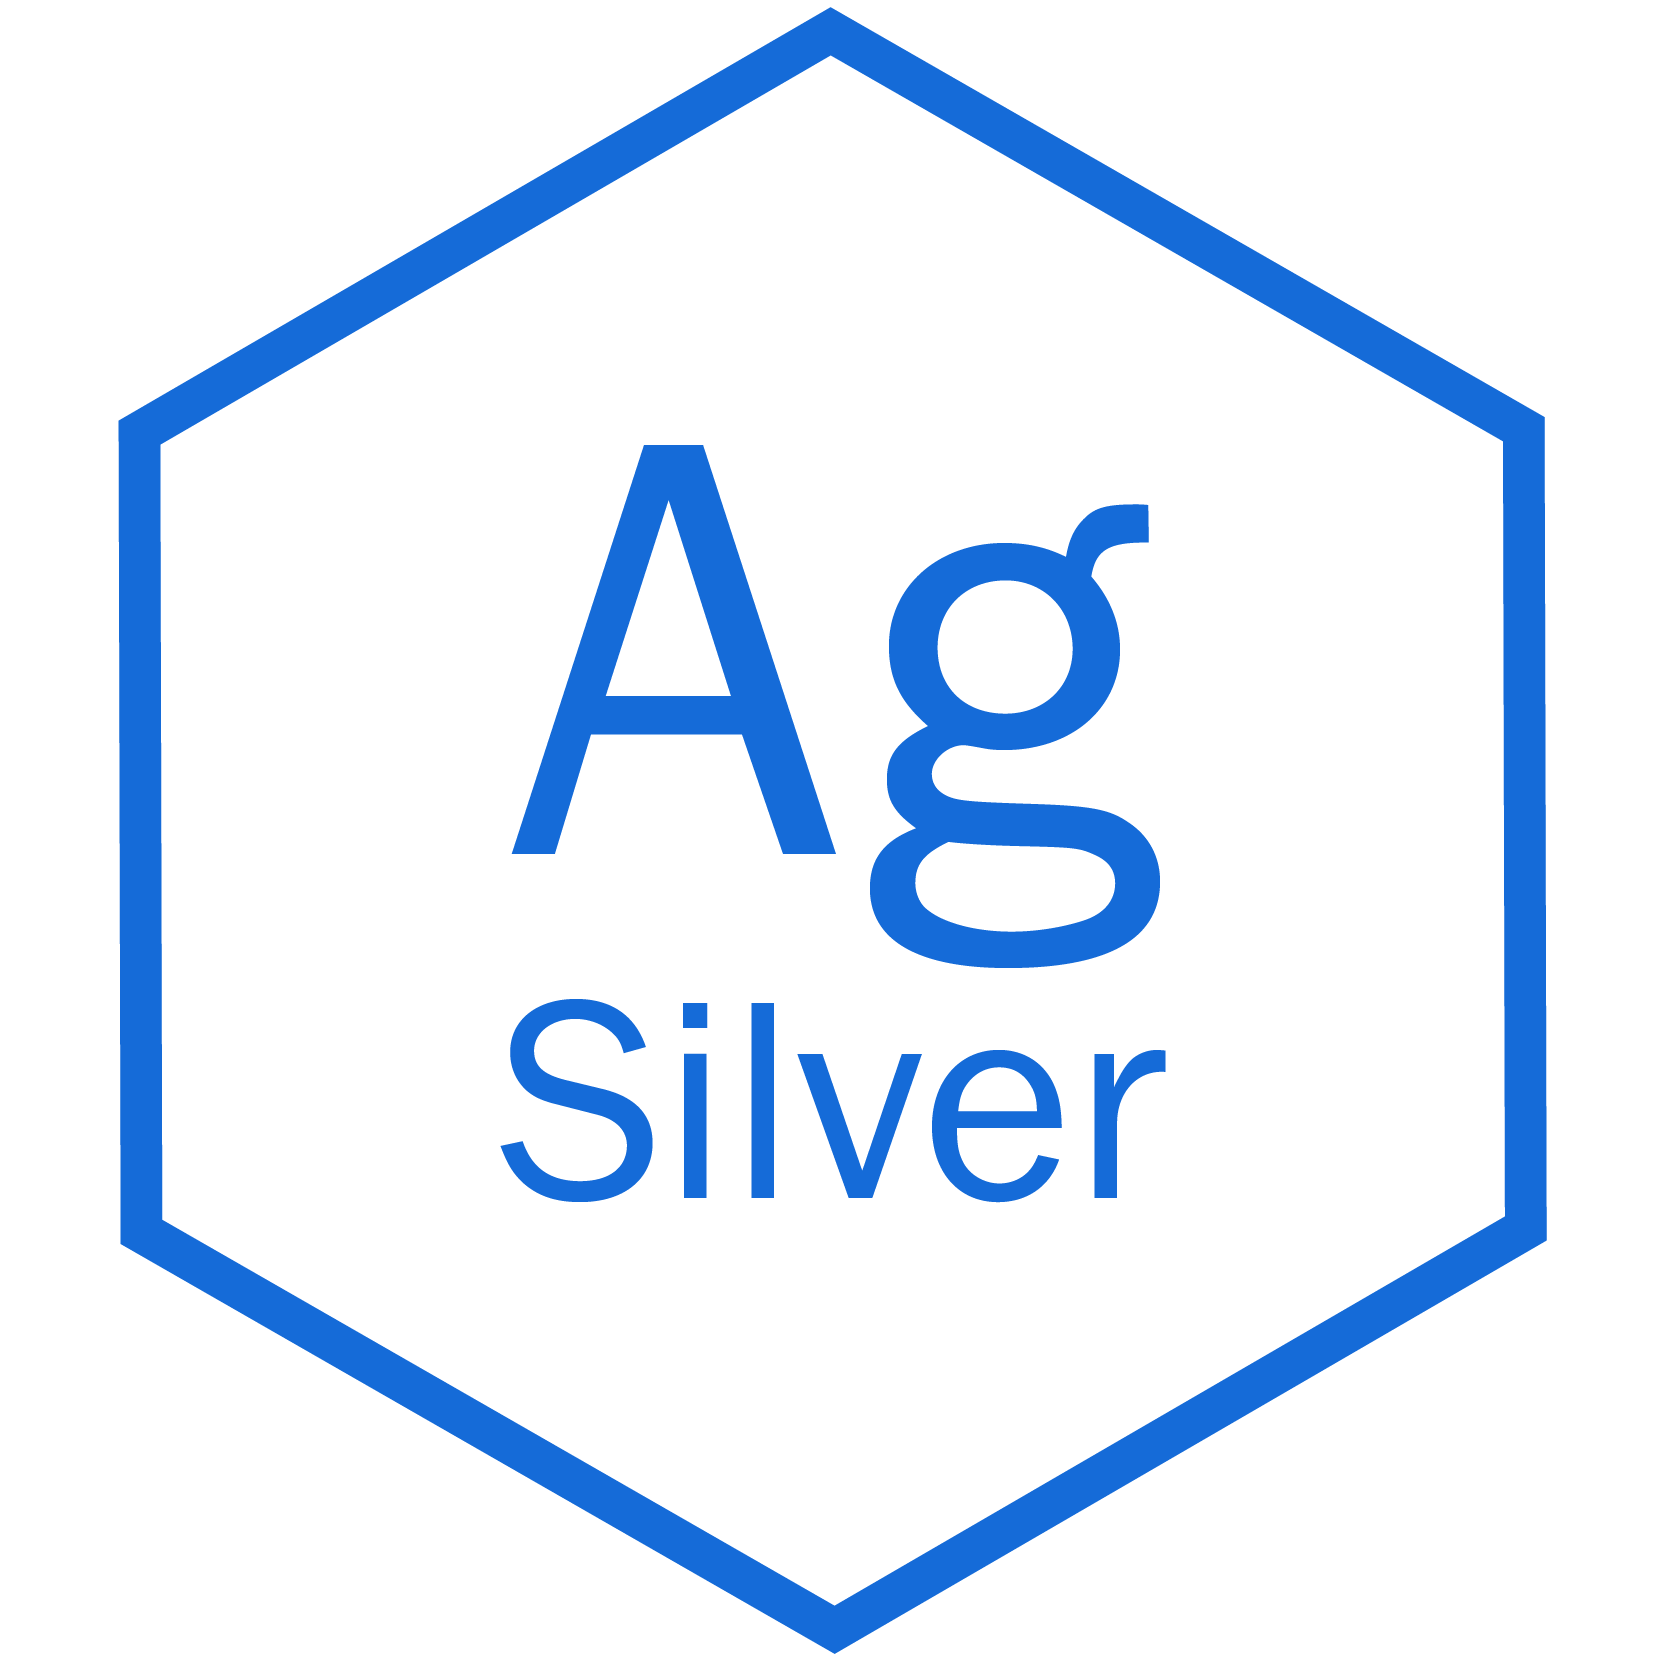 support_silver-01